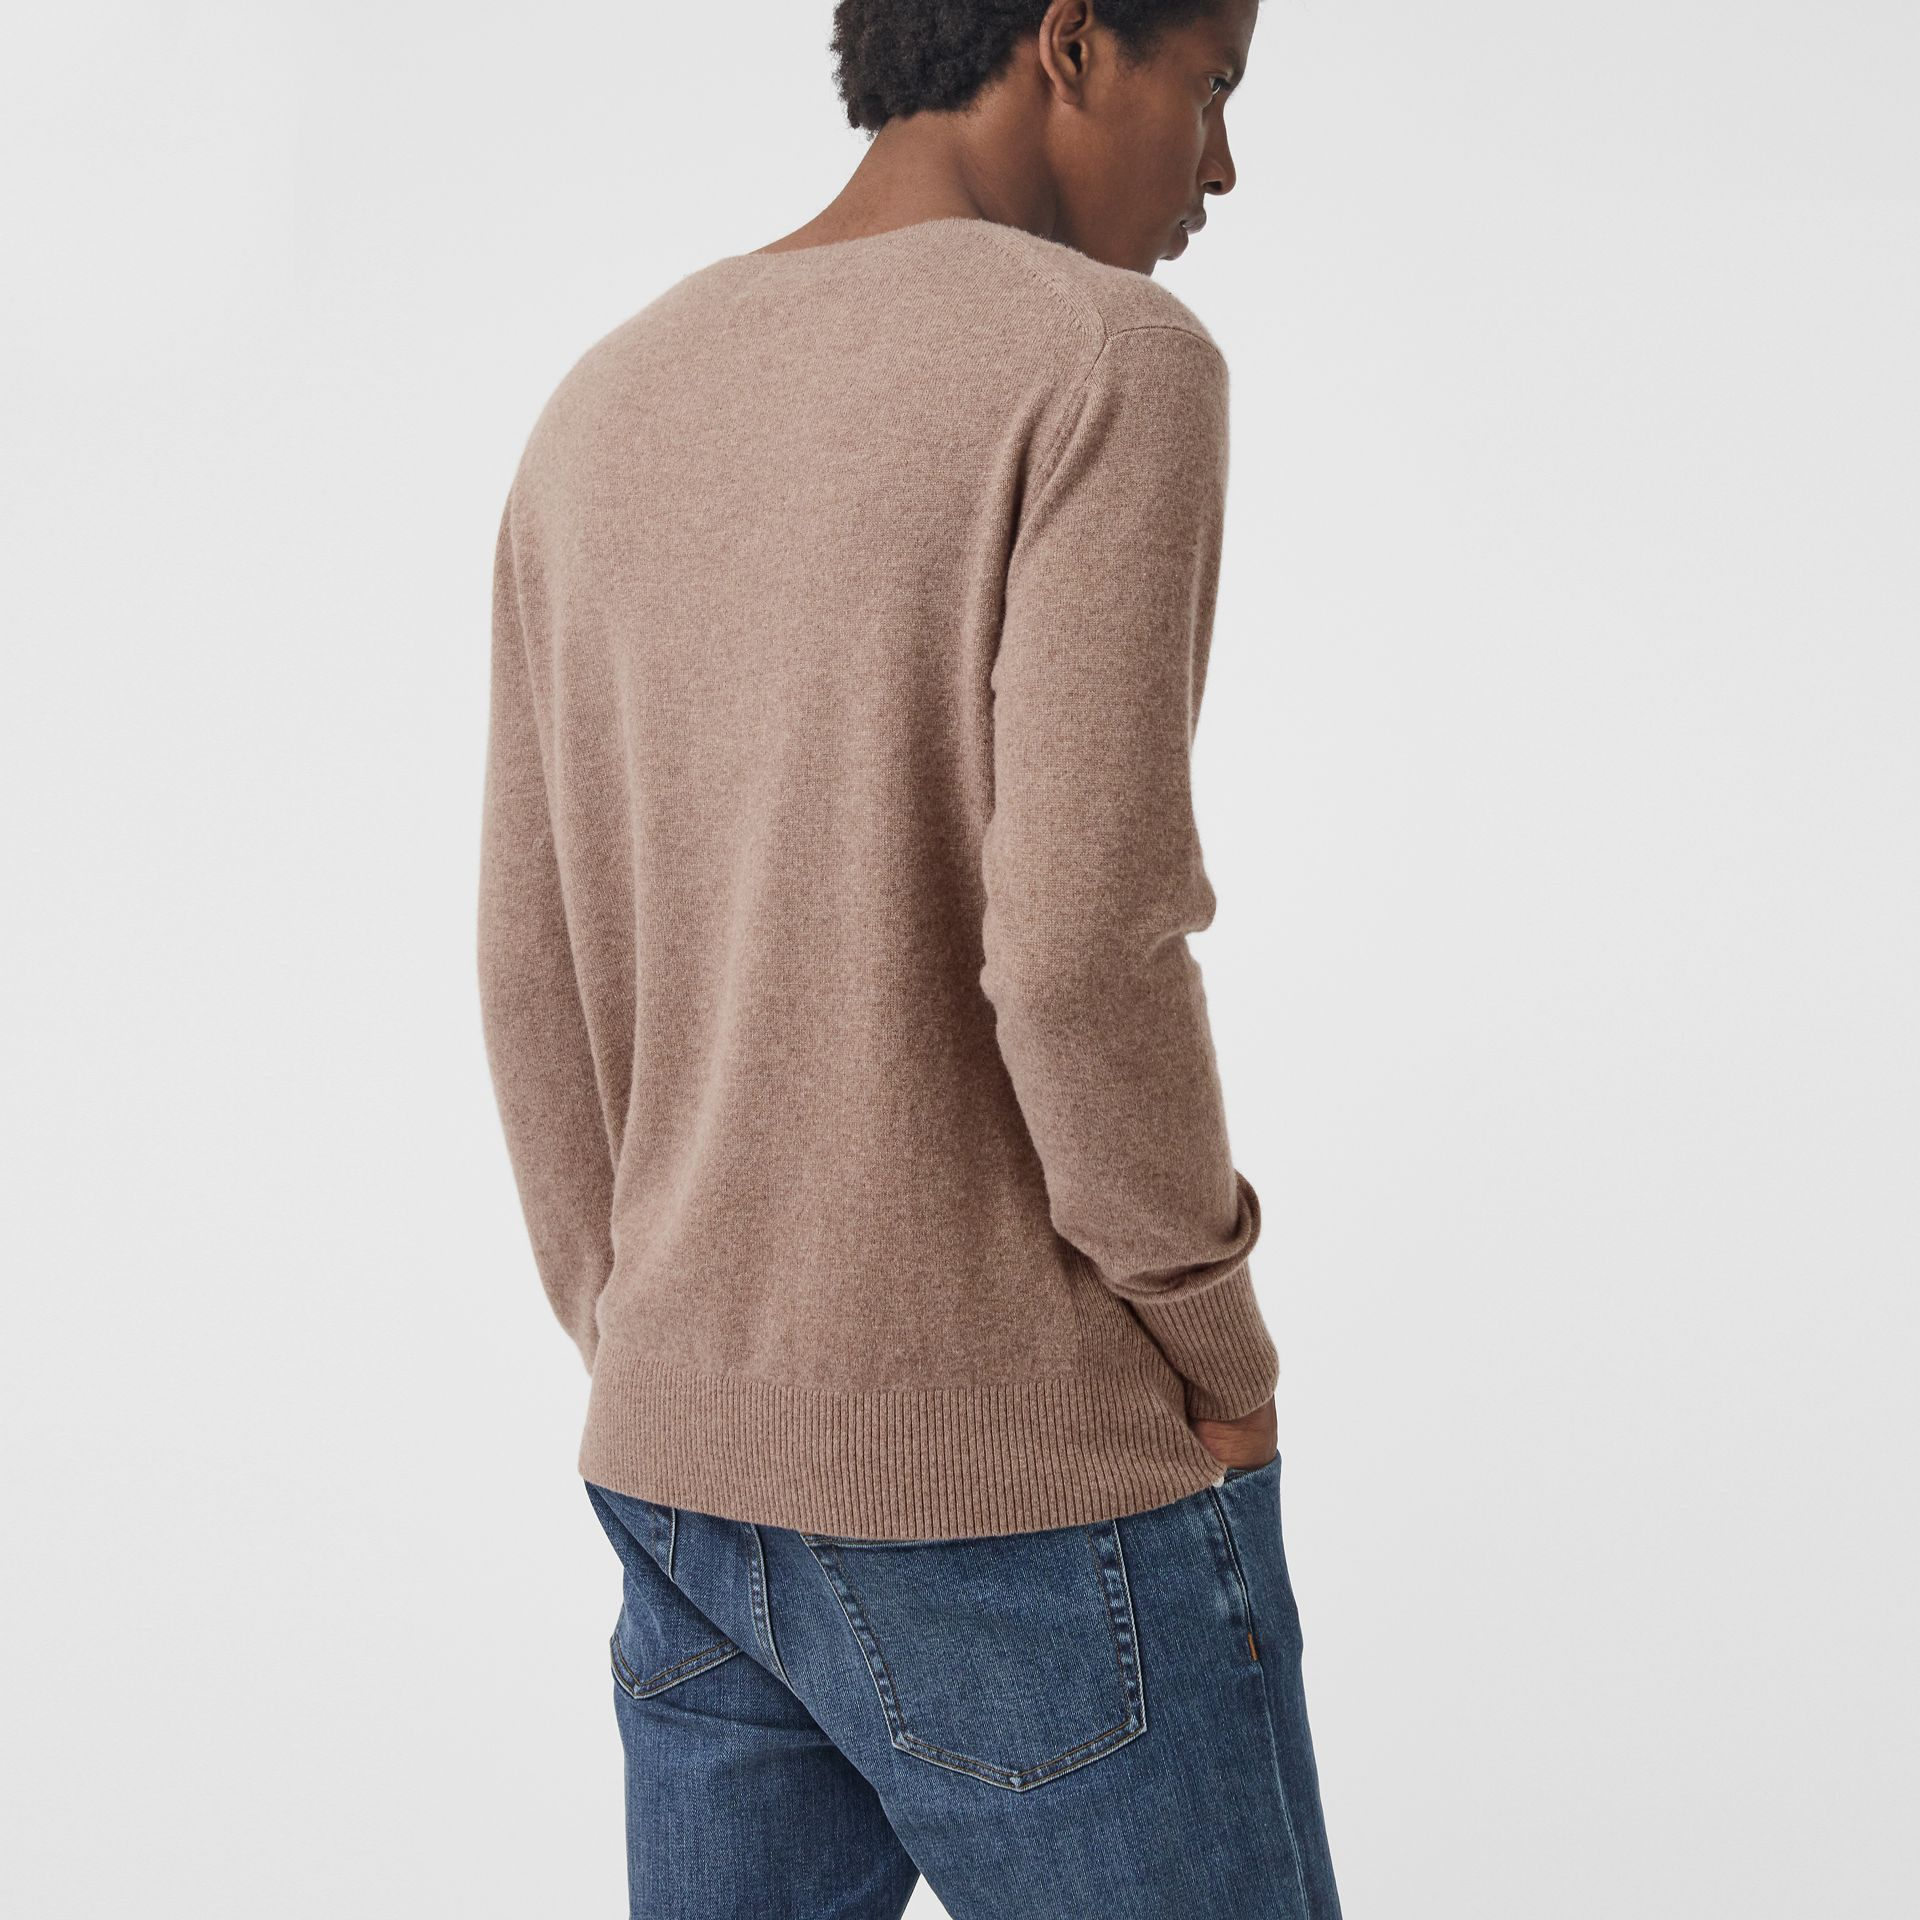 Embroidered Archive Logo Cashmere Sweater in Camel Melange - Men | Burberry - gallery image 2